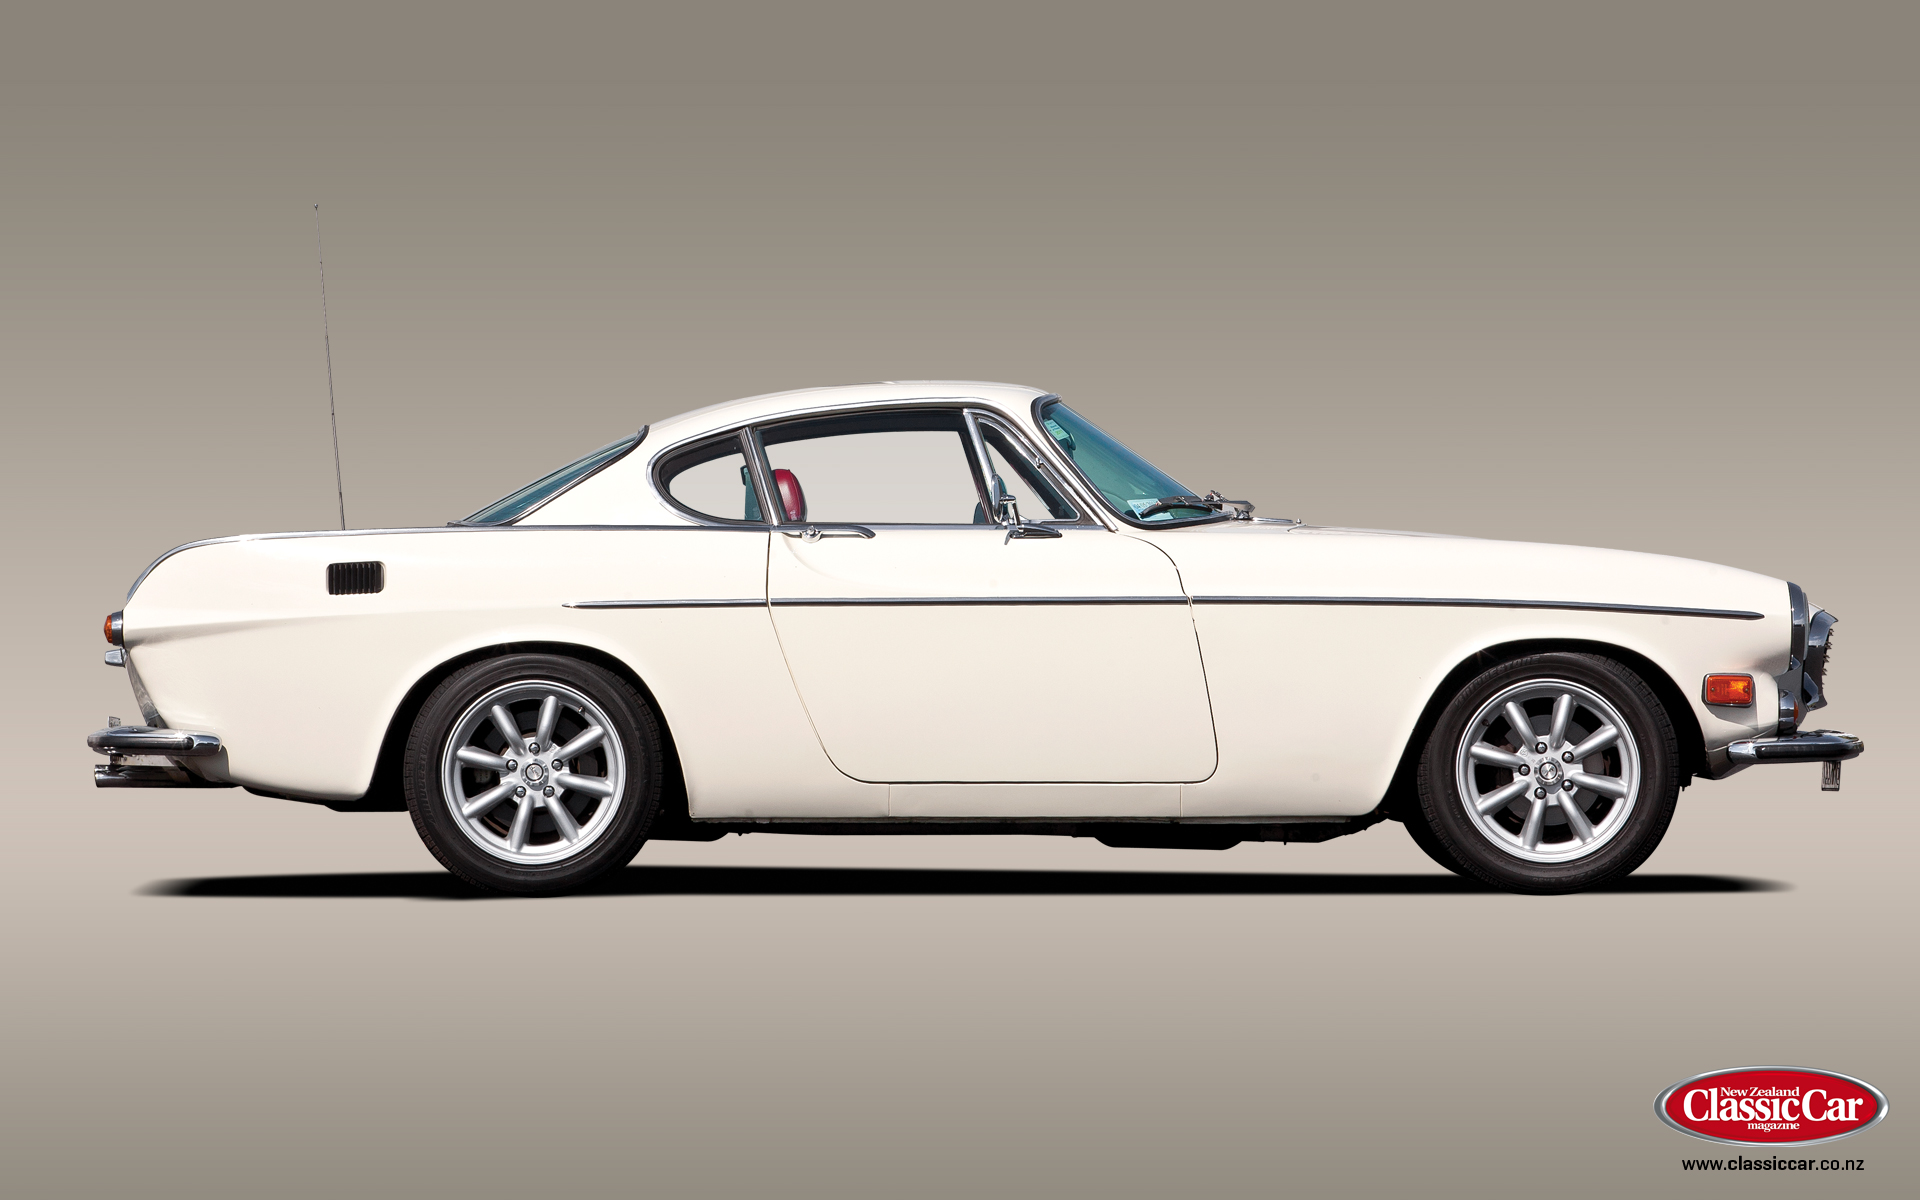 Famous Home Design Quotes Volvo P1800 Concept Car I Like To Waste My Time